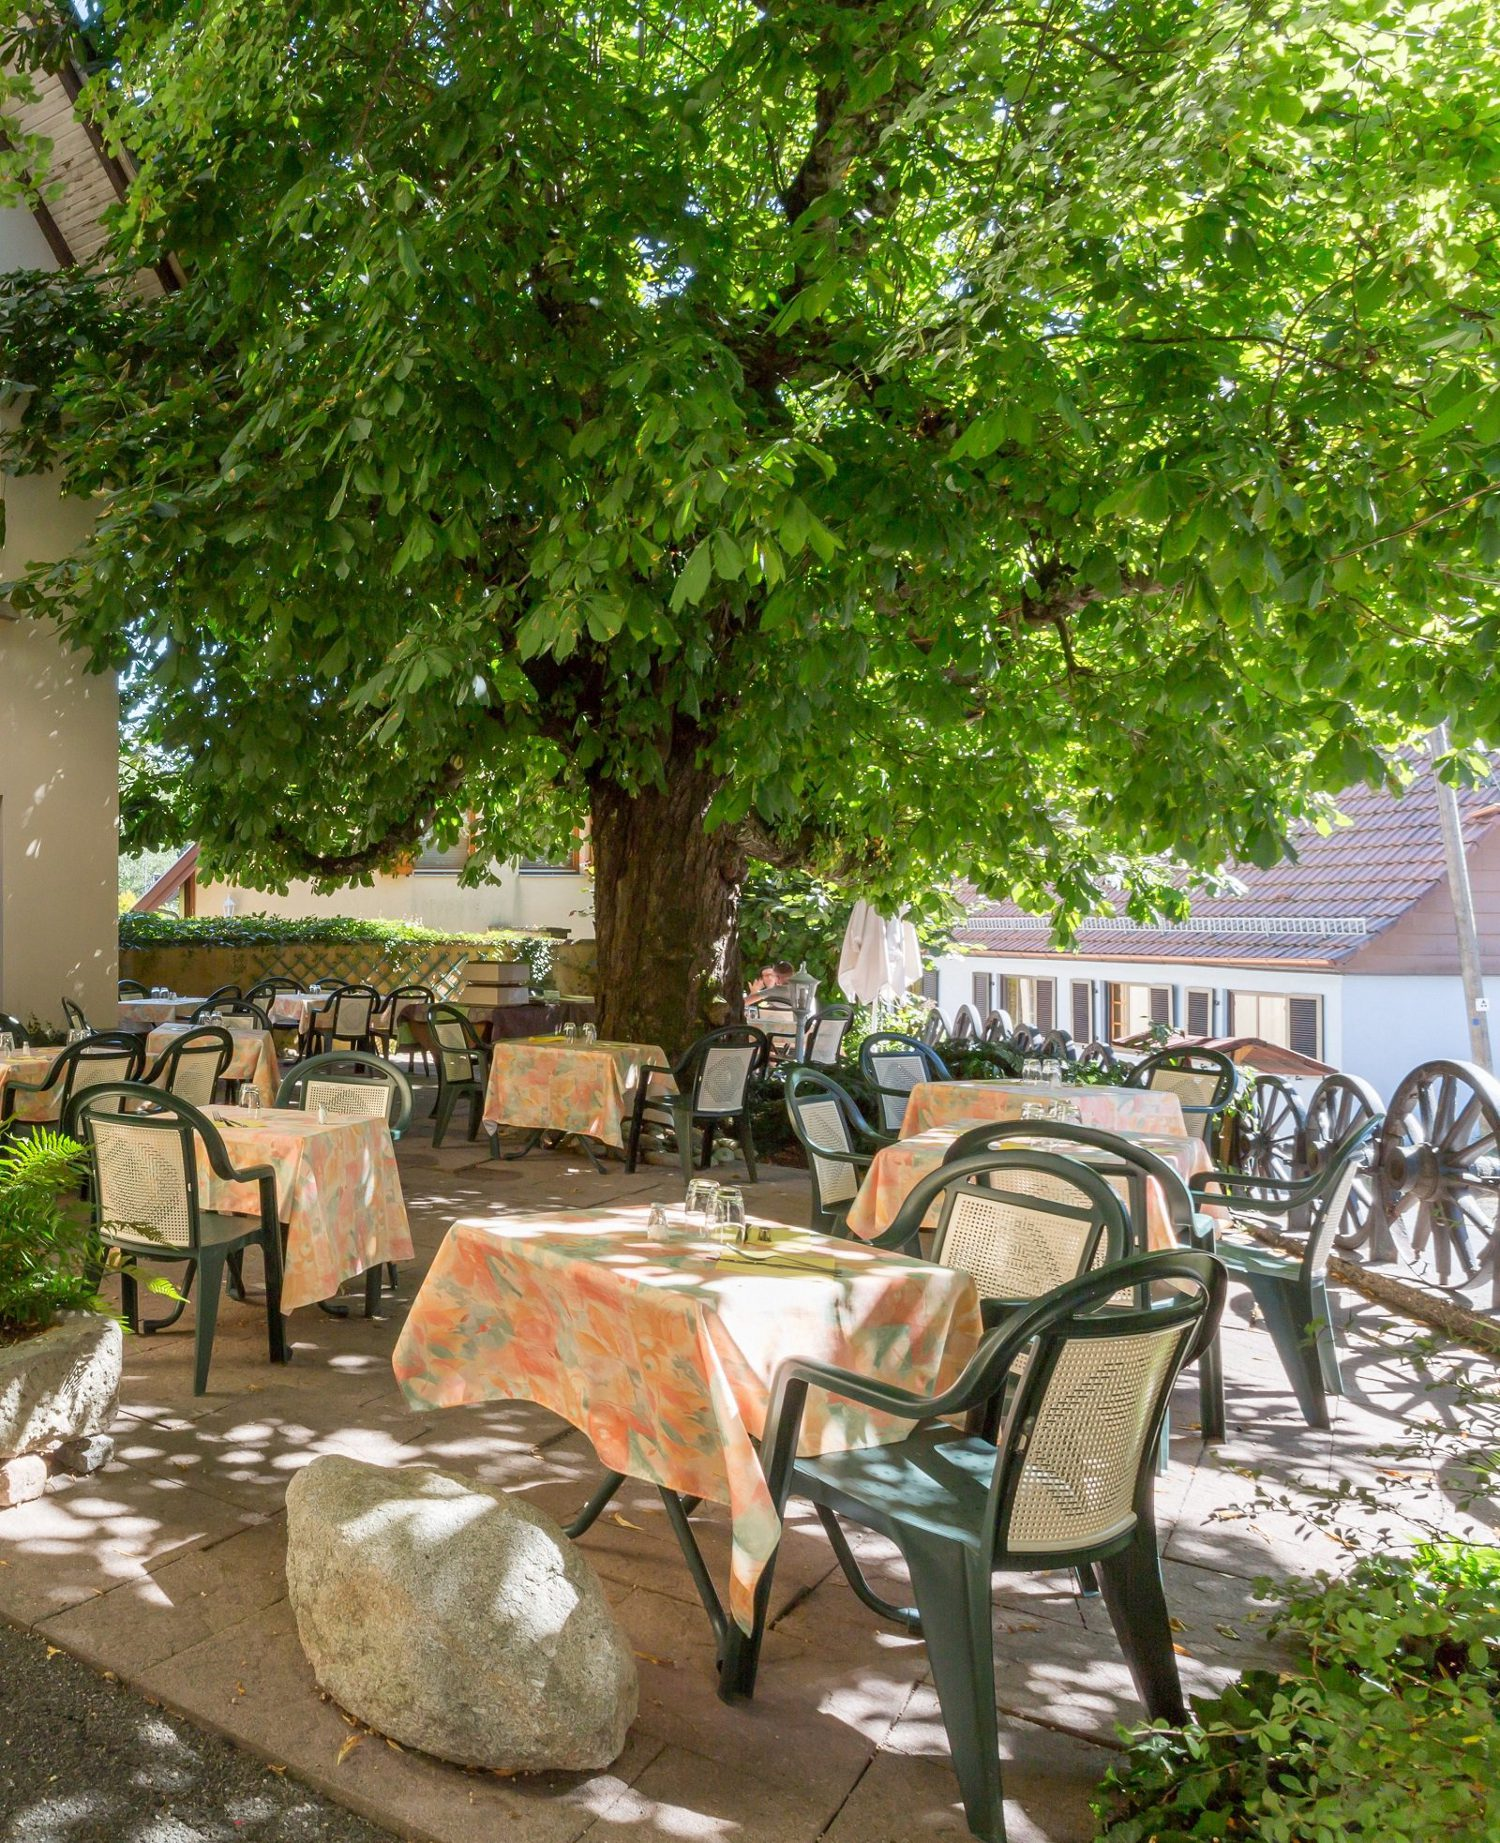 Restaurant of L'Aigle d'Or hotel